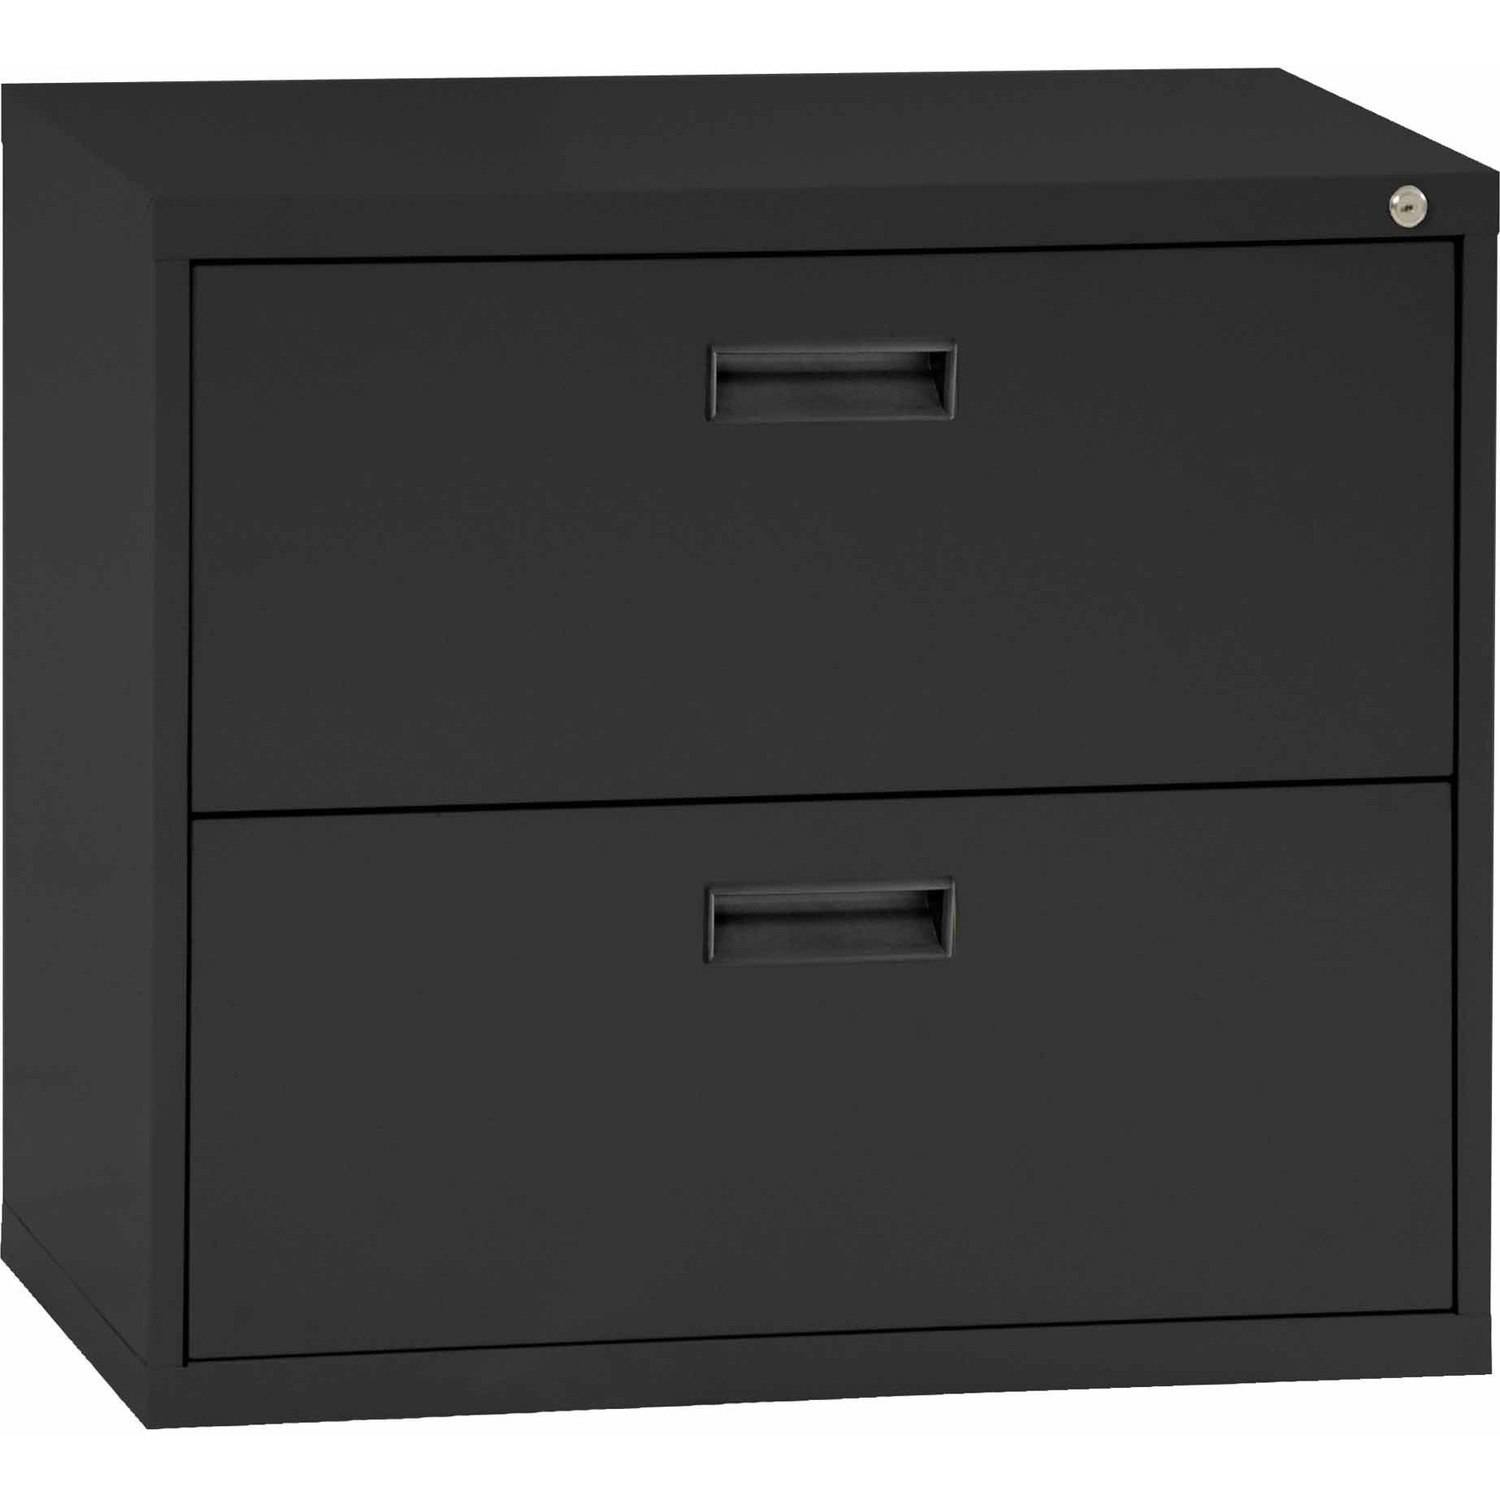 Sandusky Steel Lateral File Cabinet with Plastic Handle 2 Drawers E202L-09 - Walmart.com  sc 1 st  Walmart : long filing cabinets - Cheerinfomania.Com